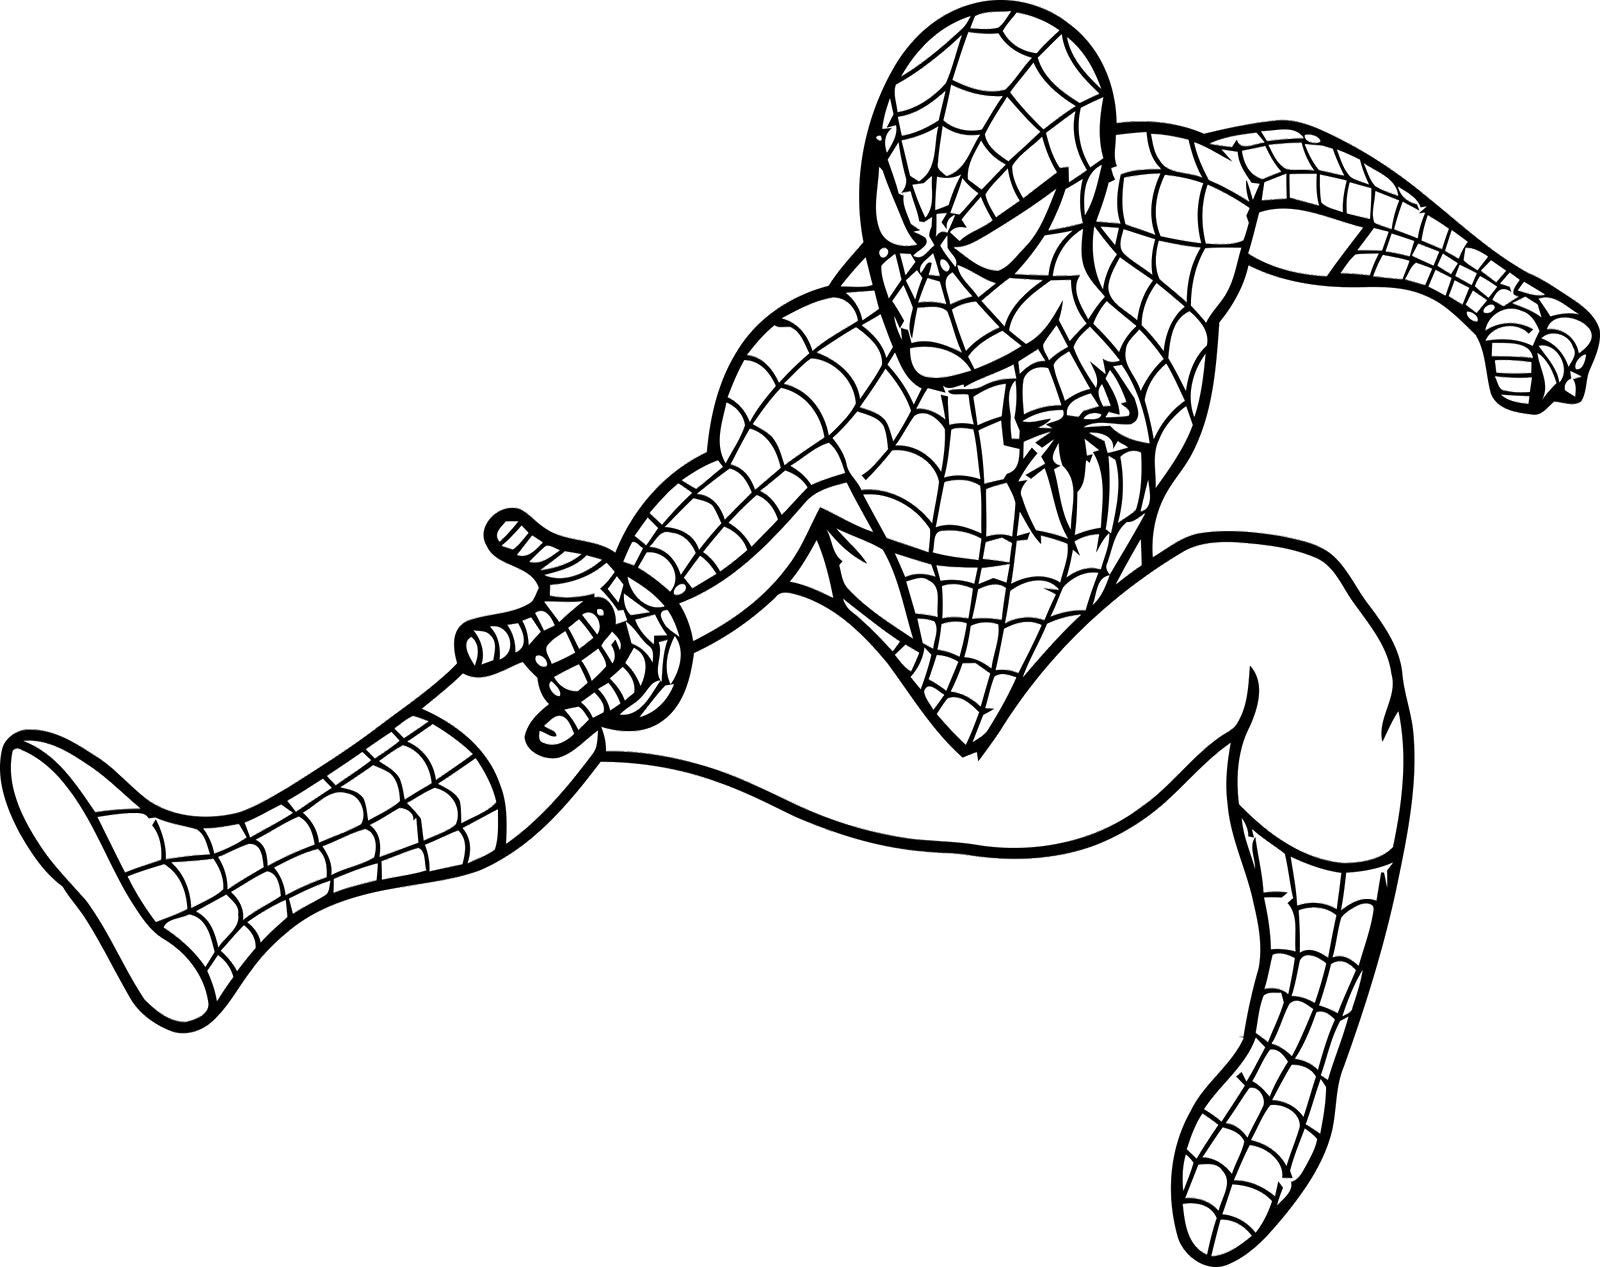 Spiderman Coloring Pages 2019 Http Www Wallpaperartdesignhd Us Spiderman Coloring Pages 2019 482 Turtle Coloring Pages Lego Coloring Pages Spiderman Coloring